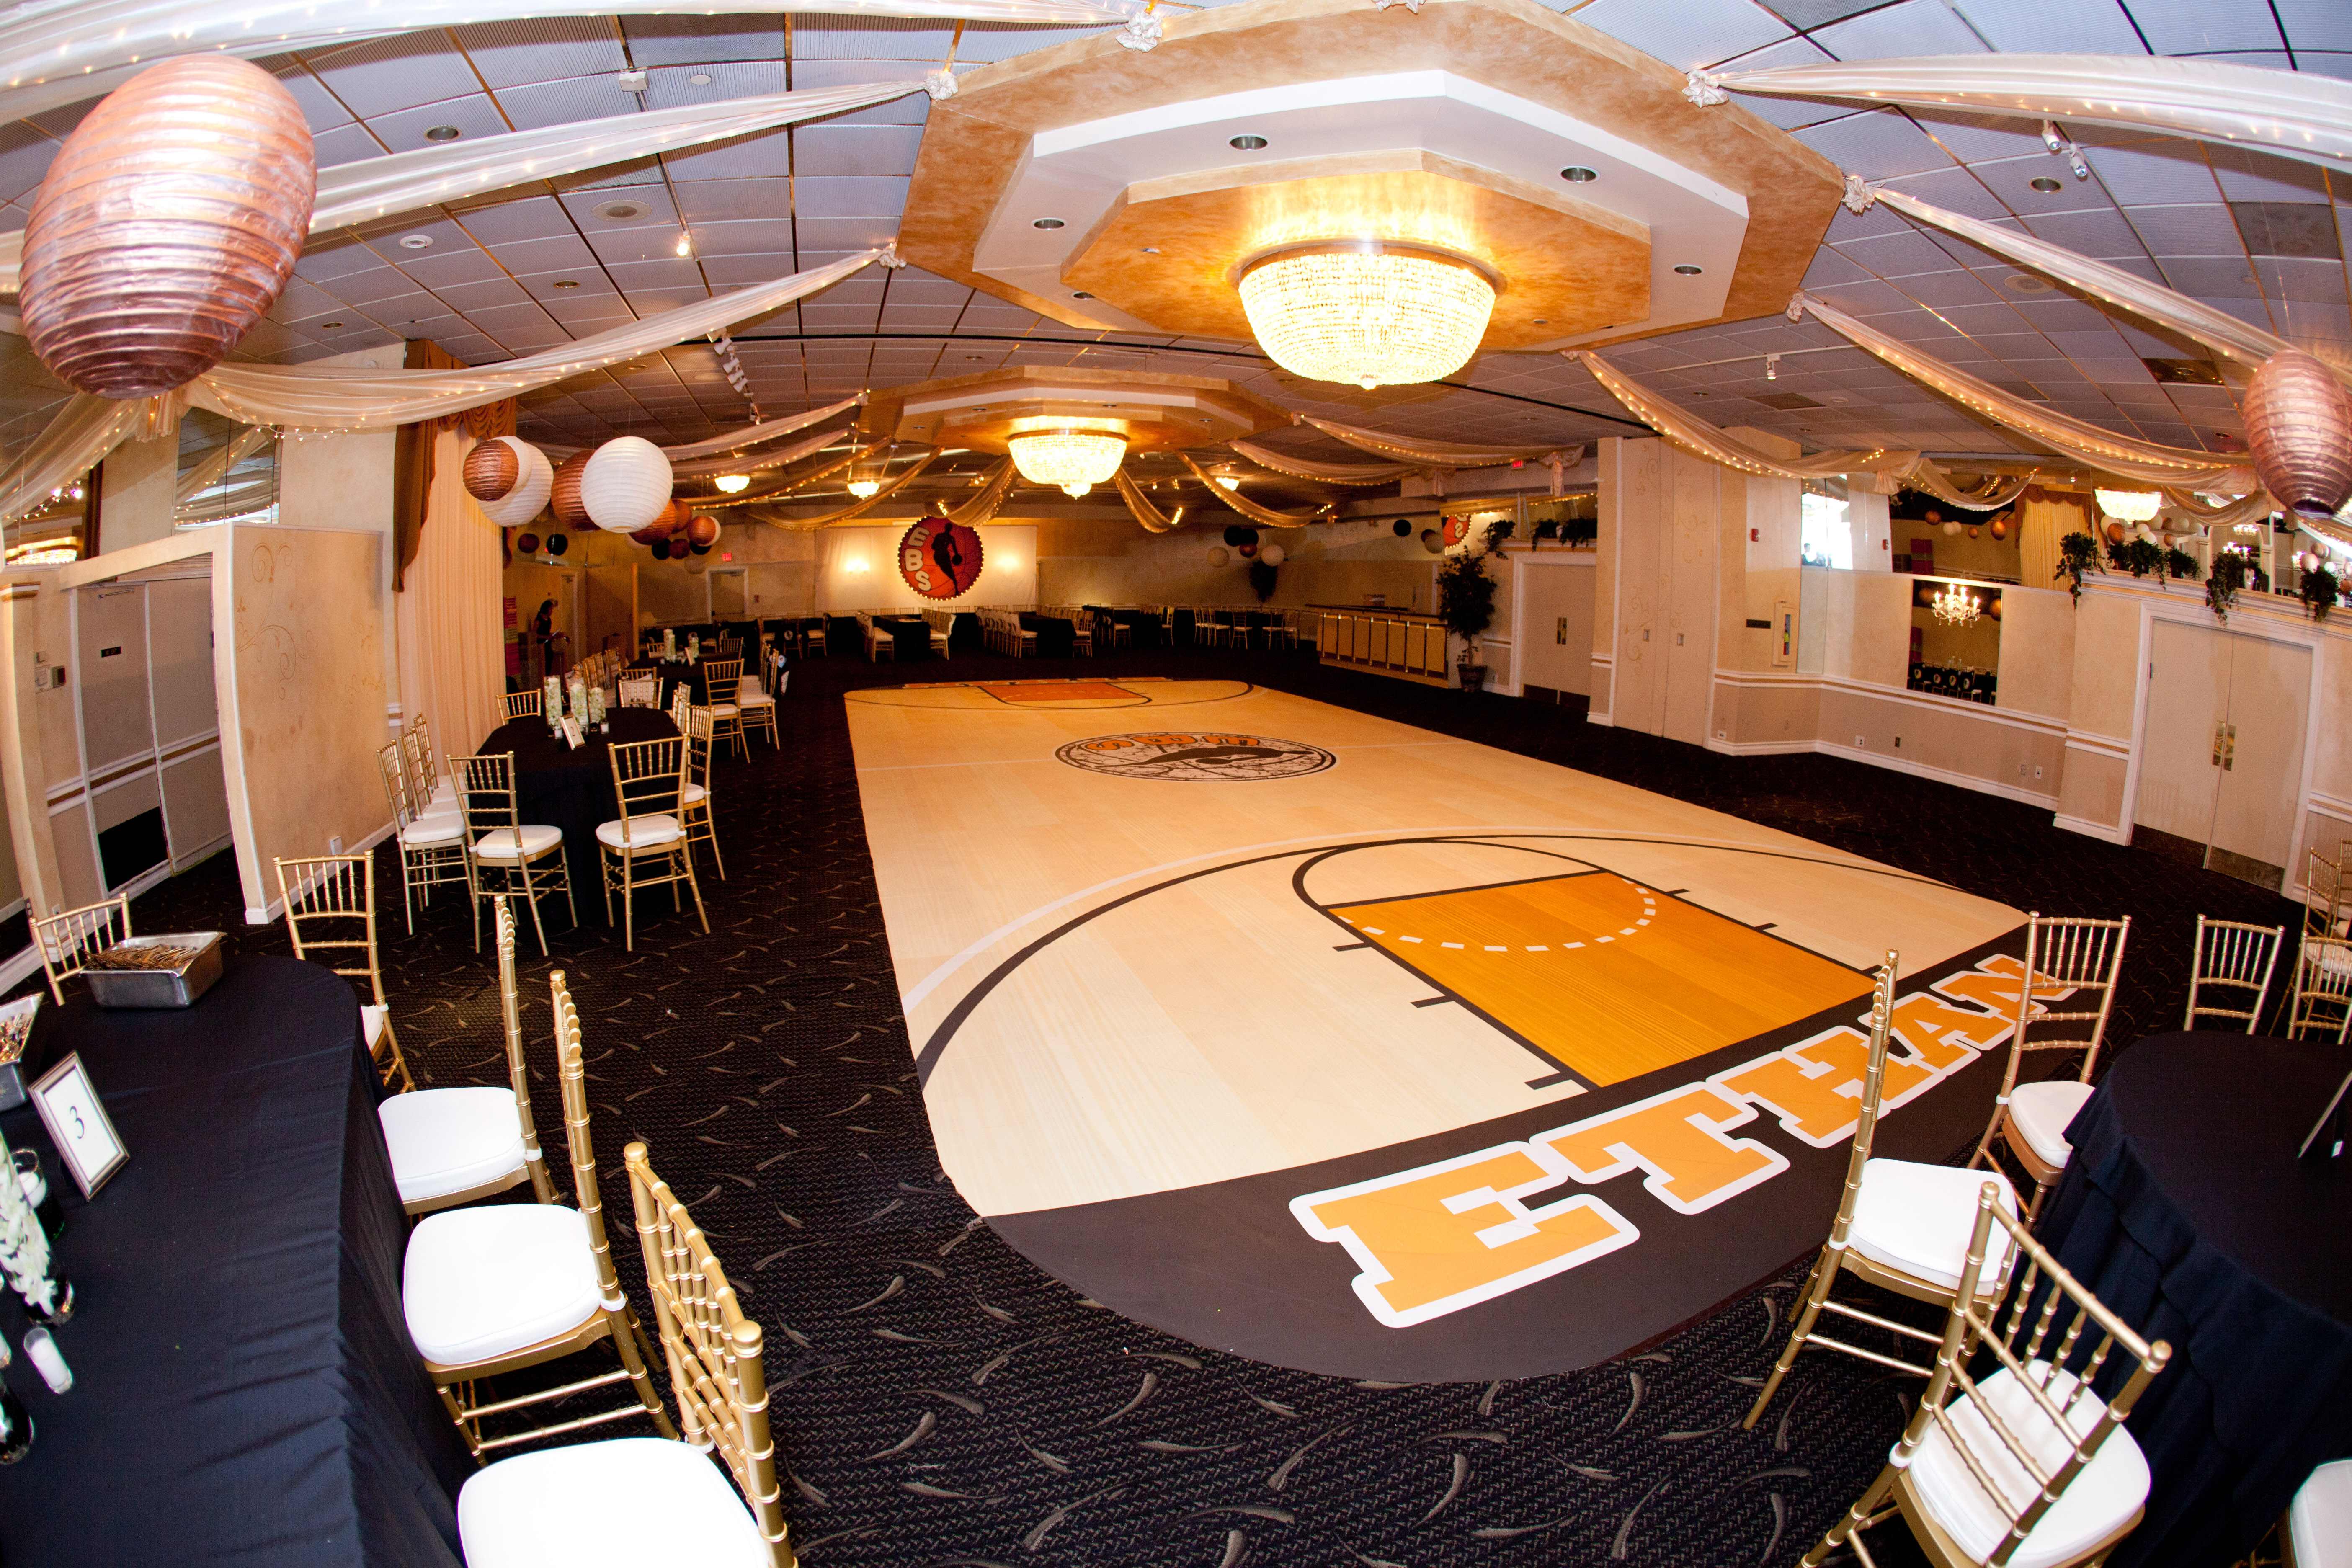 Turning A Bar Mitzvah Into A Basketball Court With Inkjet